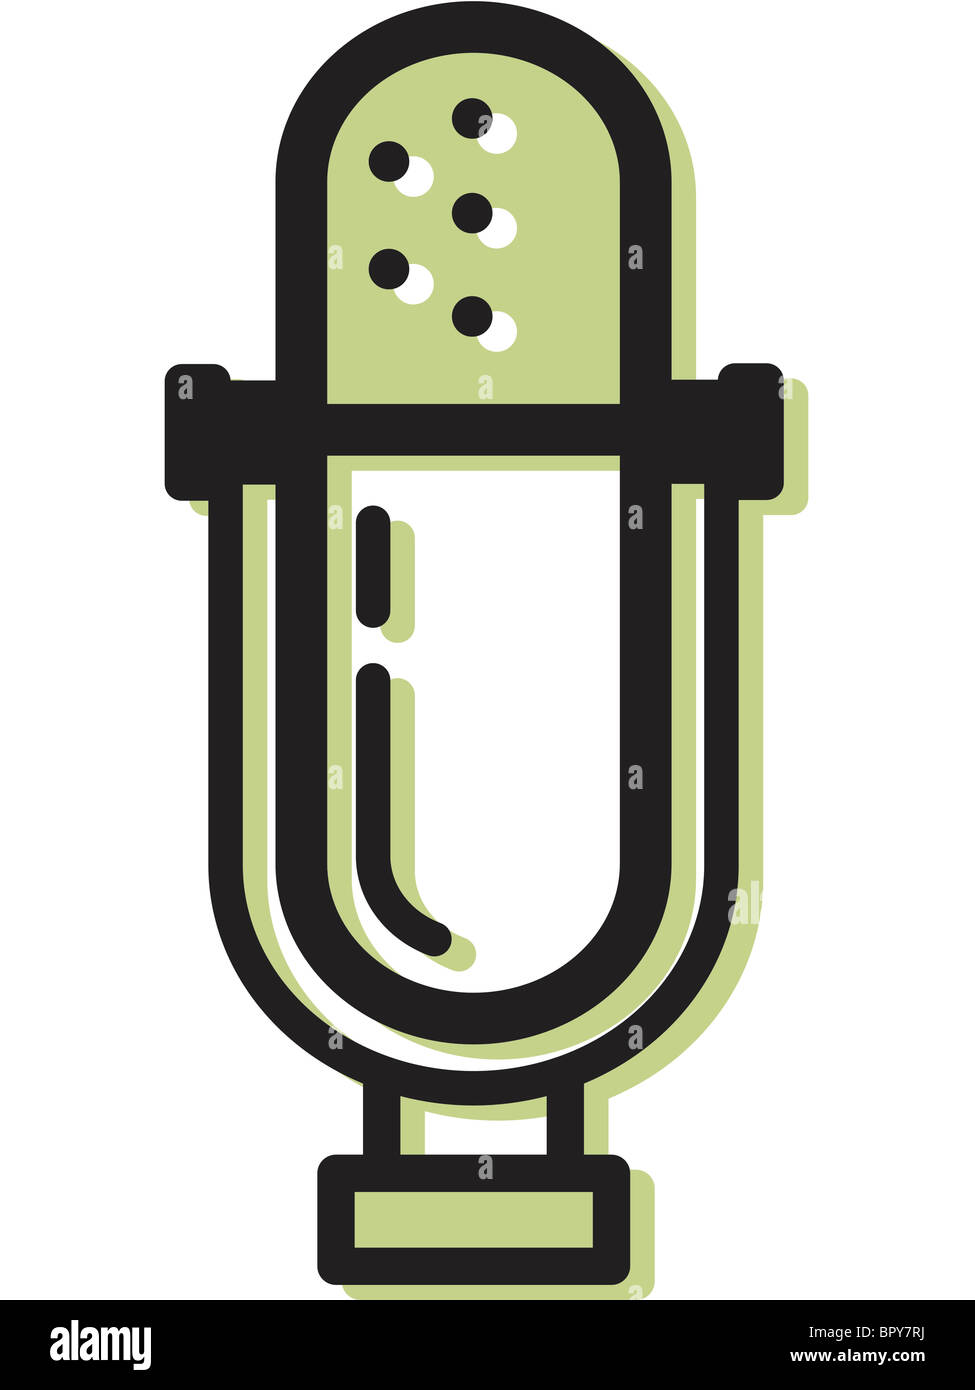 Ilustration of a microphone - Stock Image